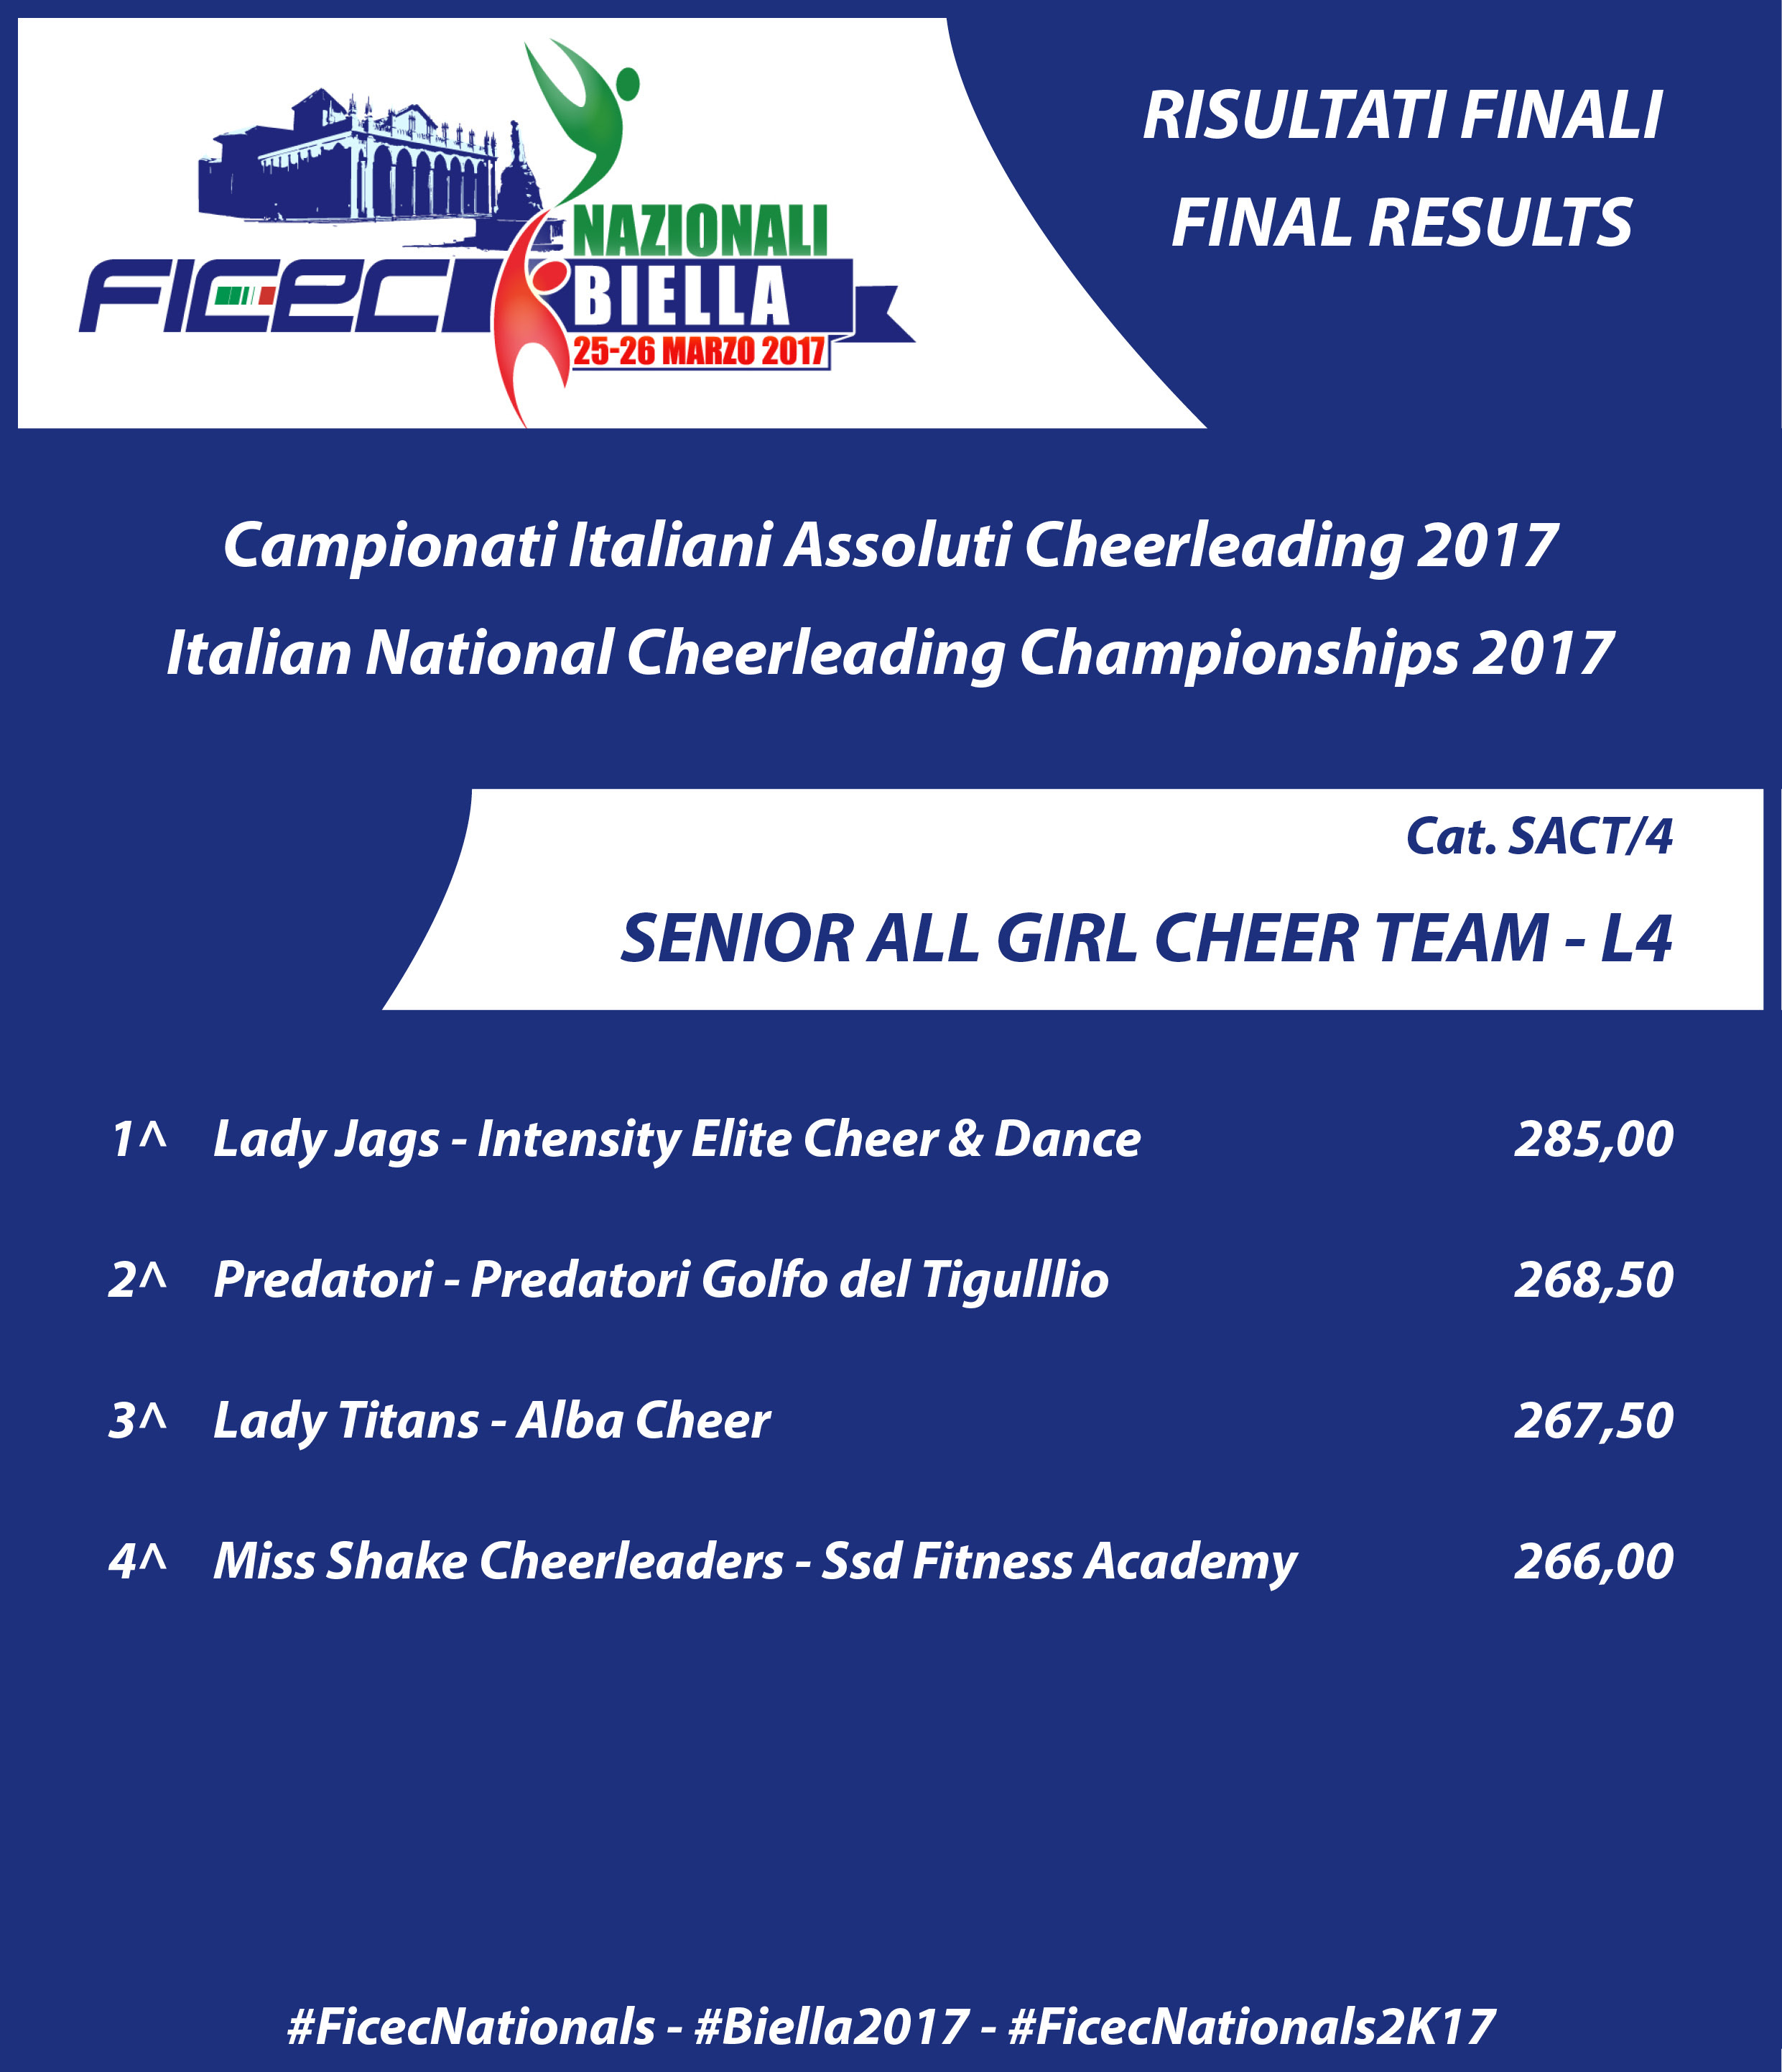 RESULTS nationals 2017 SACT 4